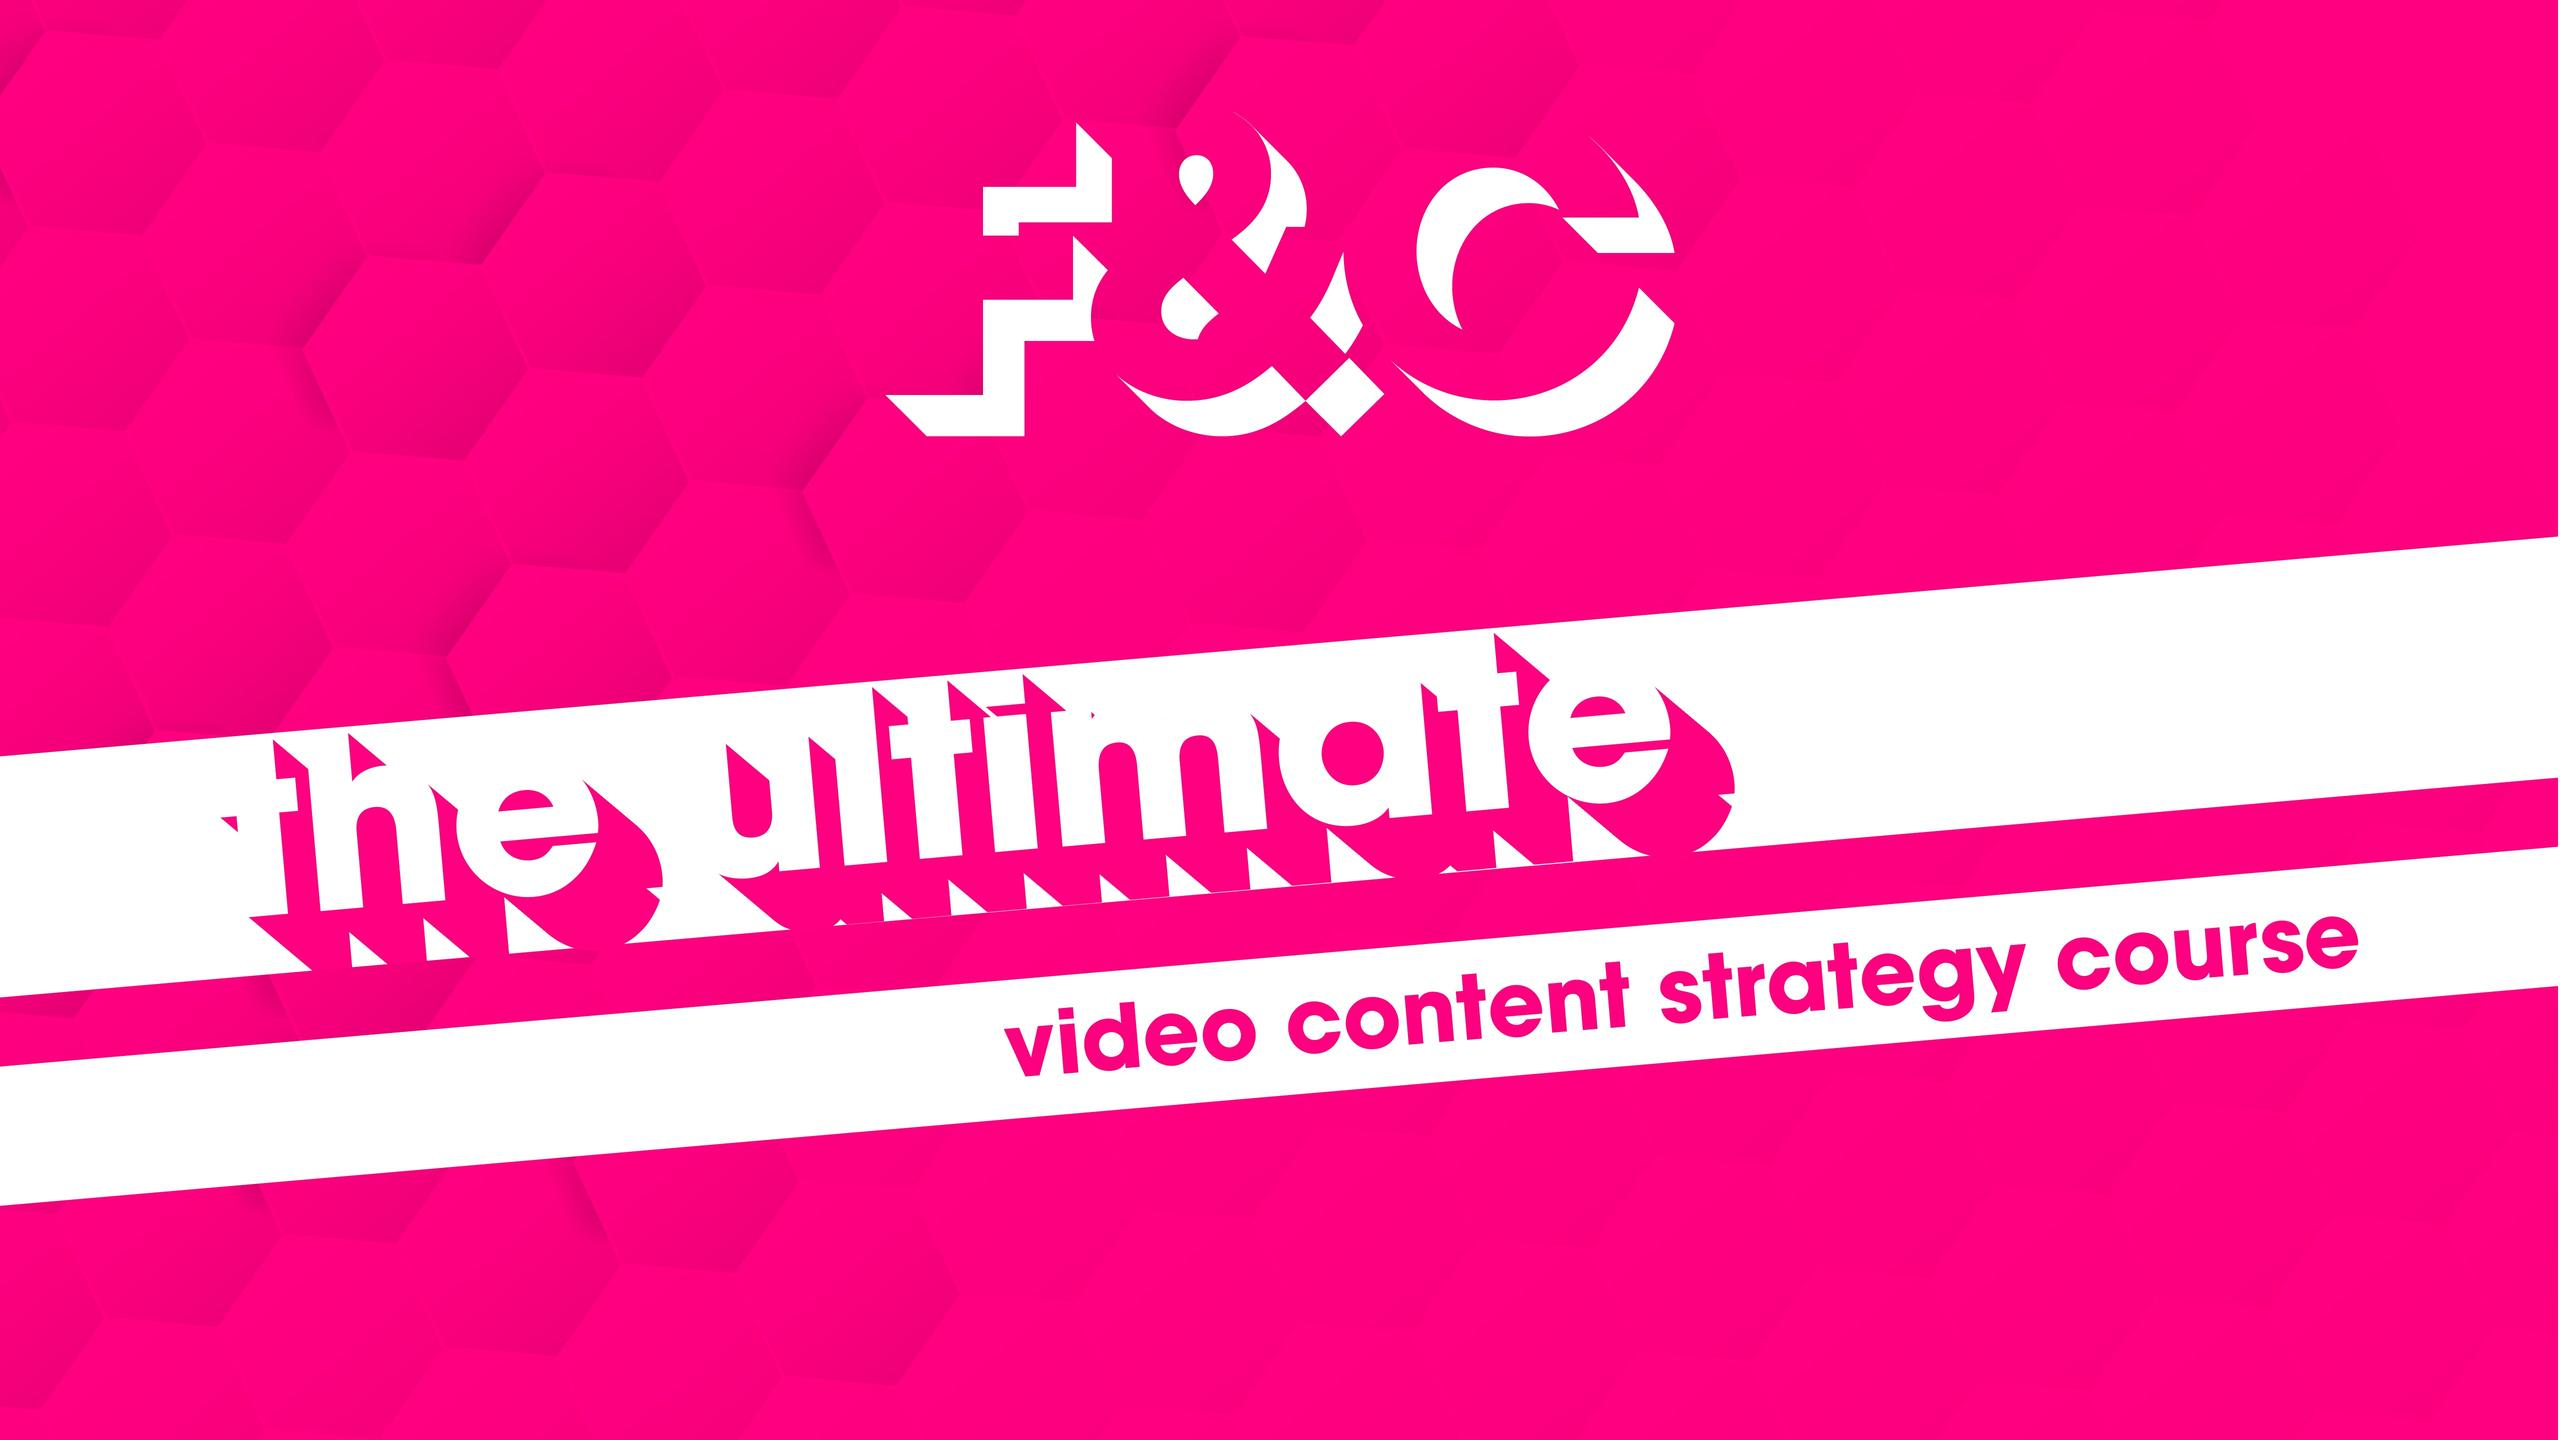 The ultimate video content strategy course - Video Content Strategy Services - Film and Content - F&C